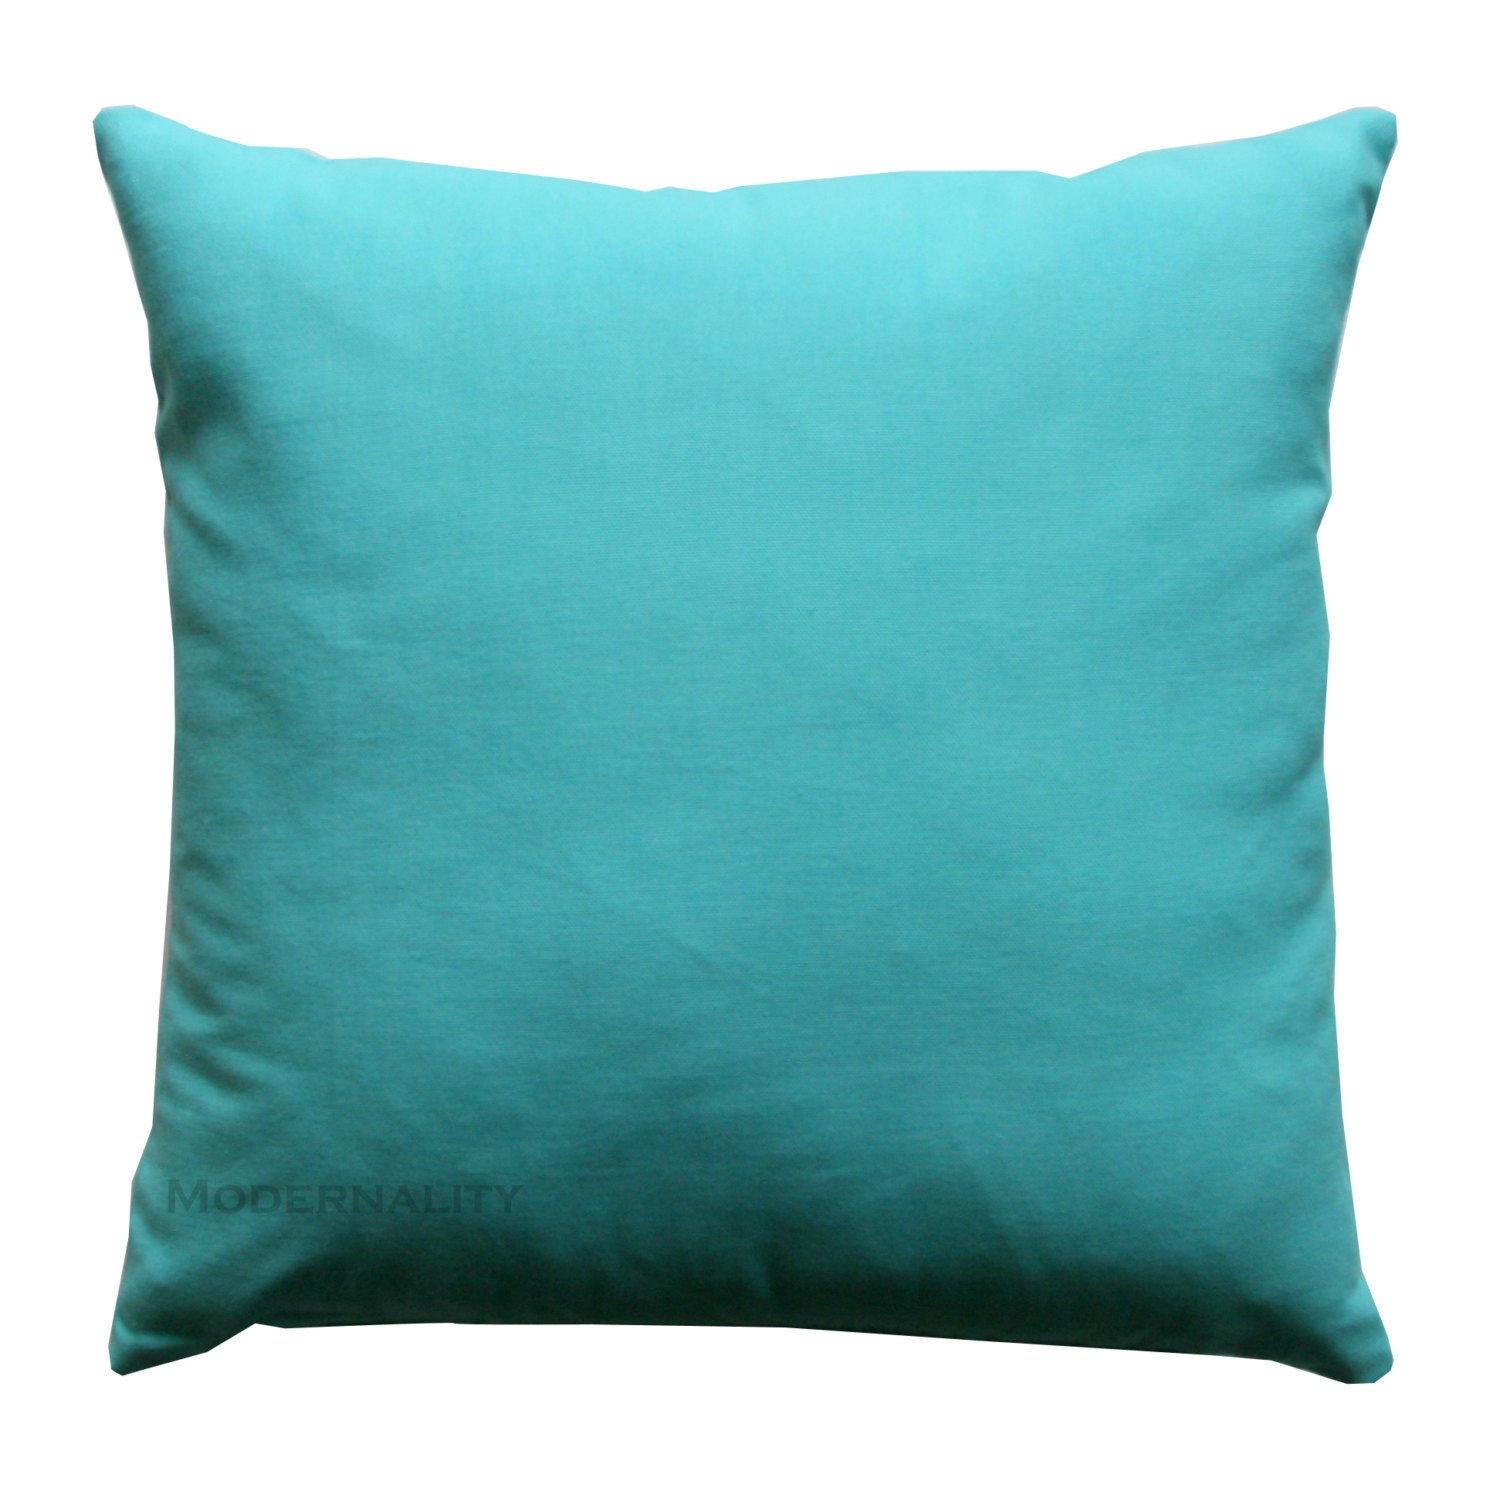 Blue And Aqua Throw Pillows : Aqua Throw Pillow Mandarin Blue Pillow Cover Solid Pillow